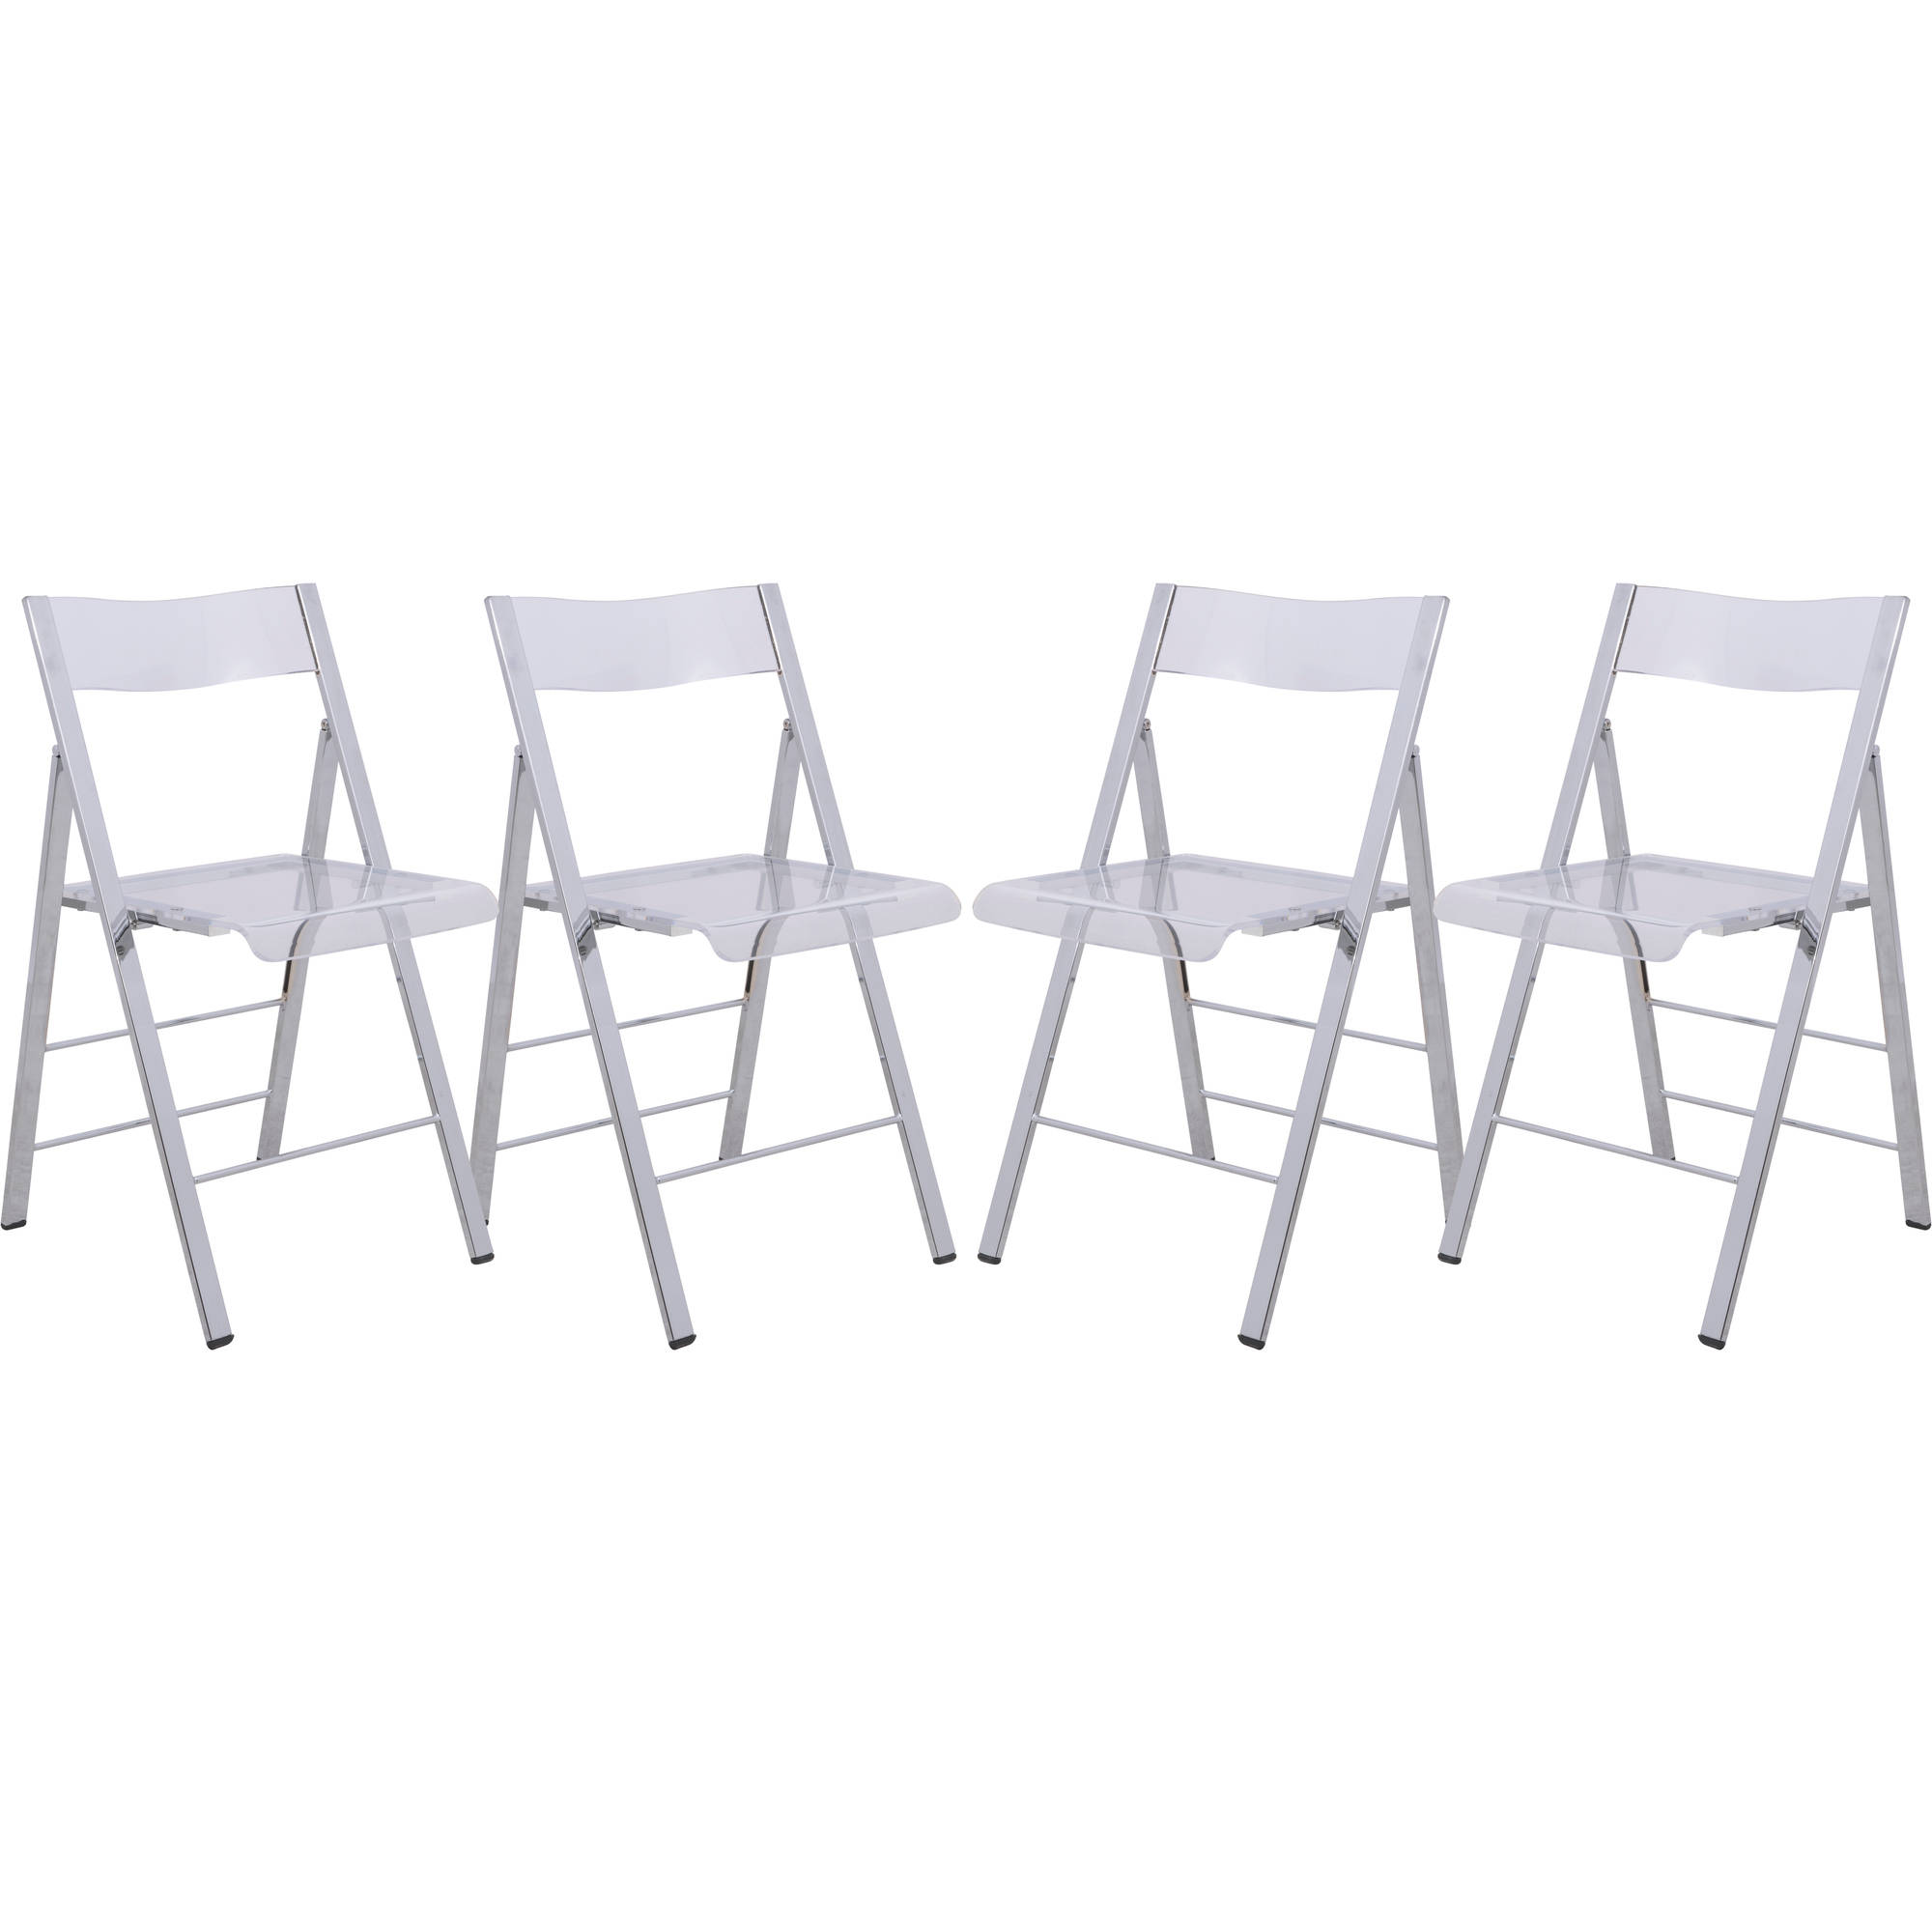 LeisureMod Menno Modern Acrylic Folding Chair in Clear, Set of 4